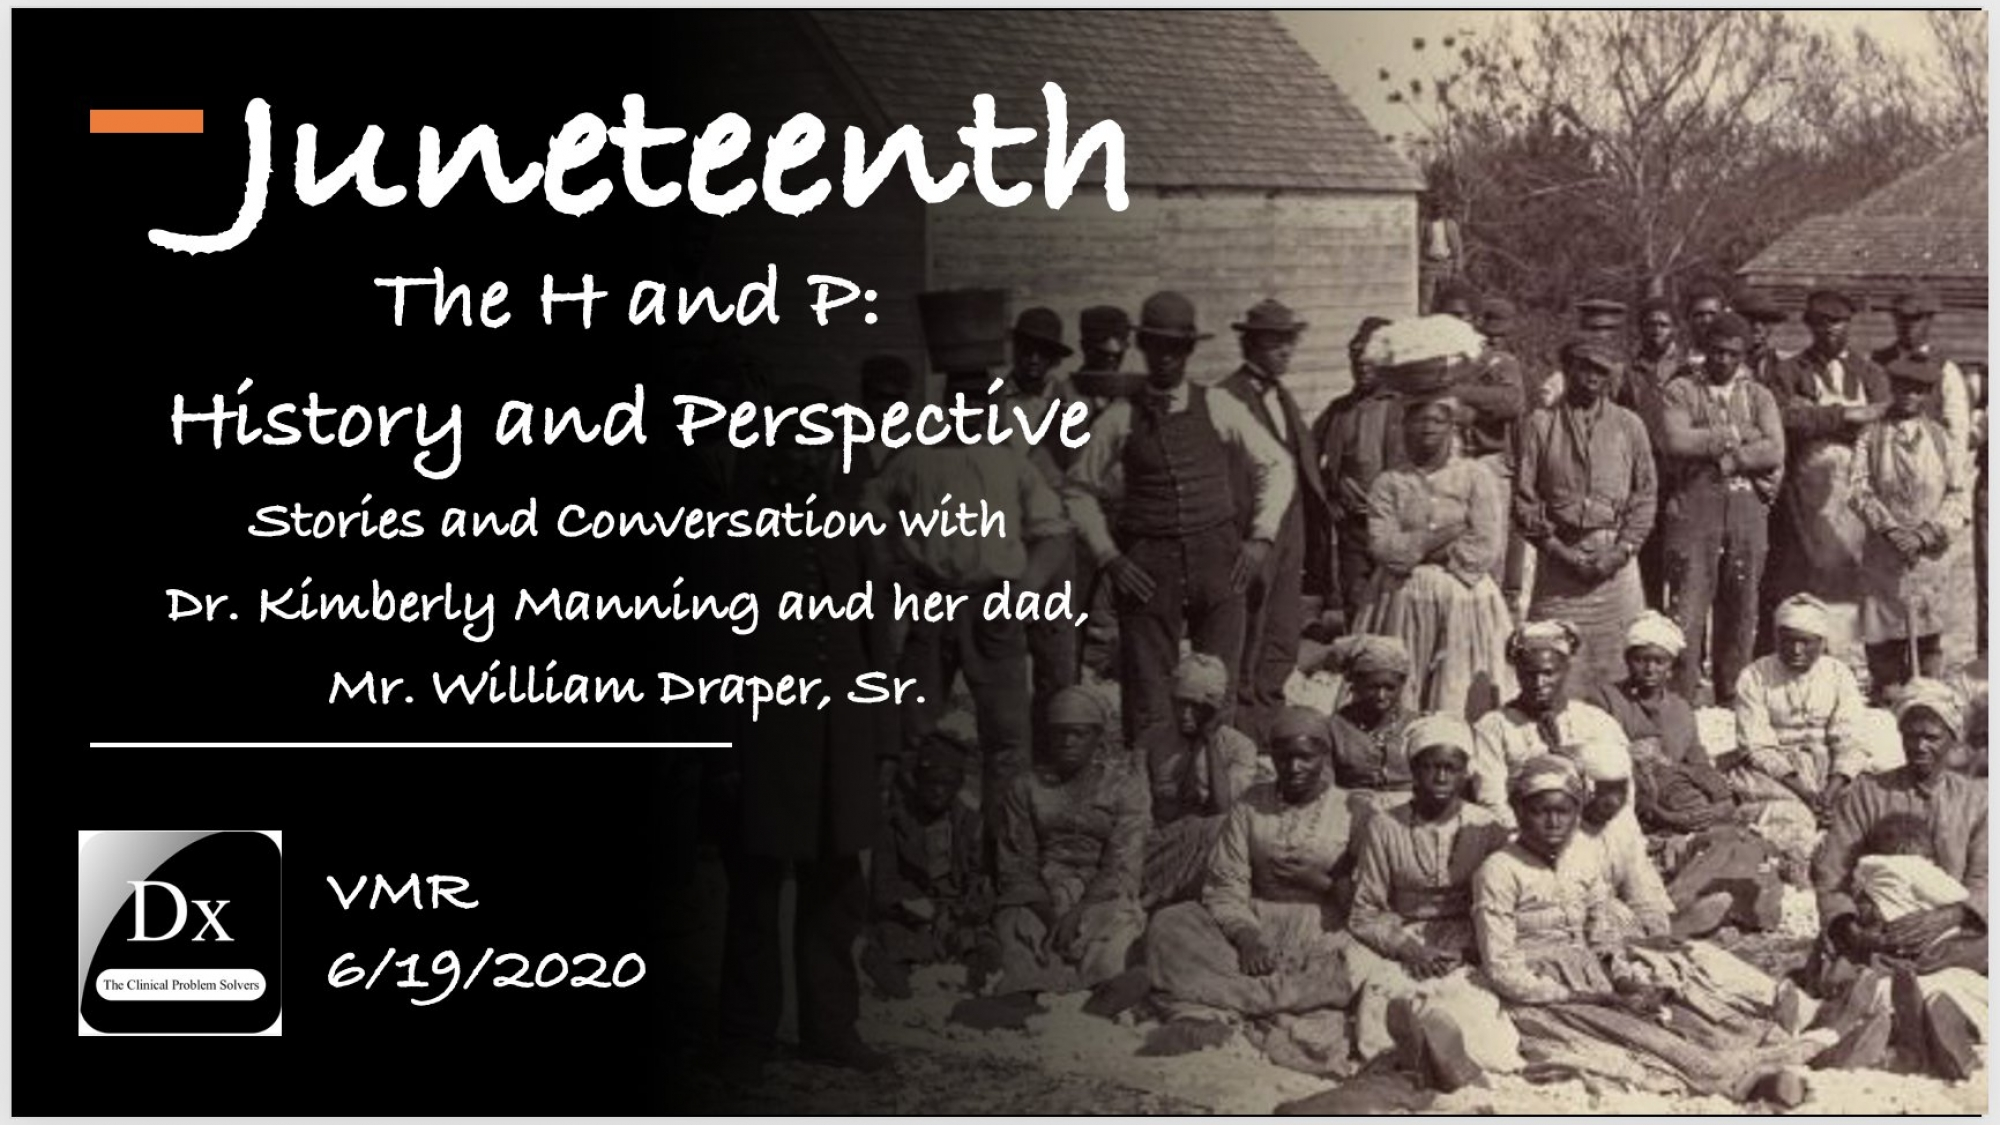 Juneteenth Overview